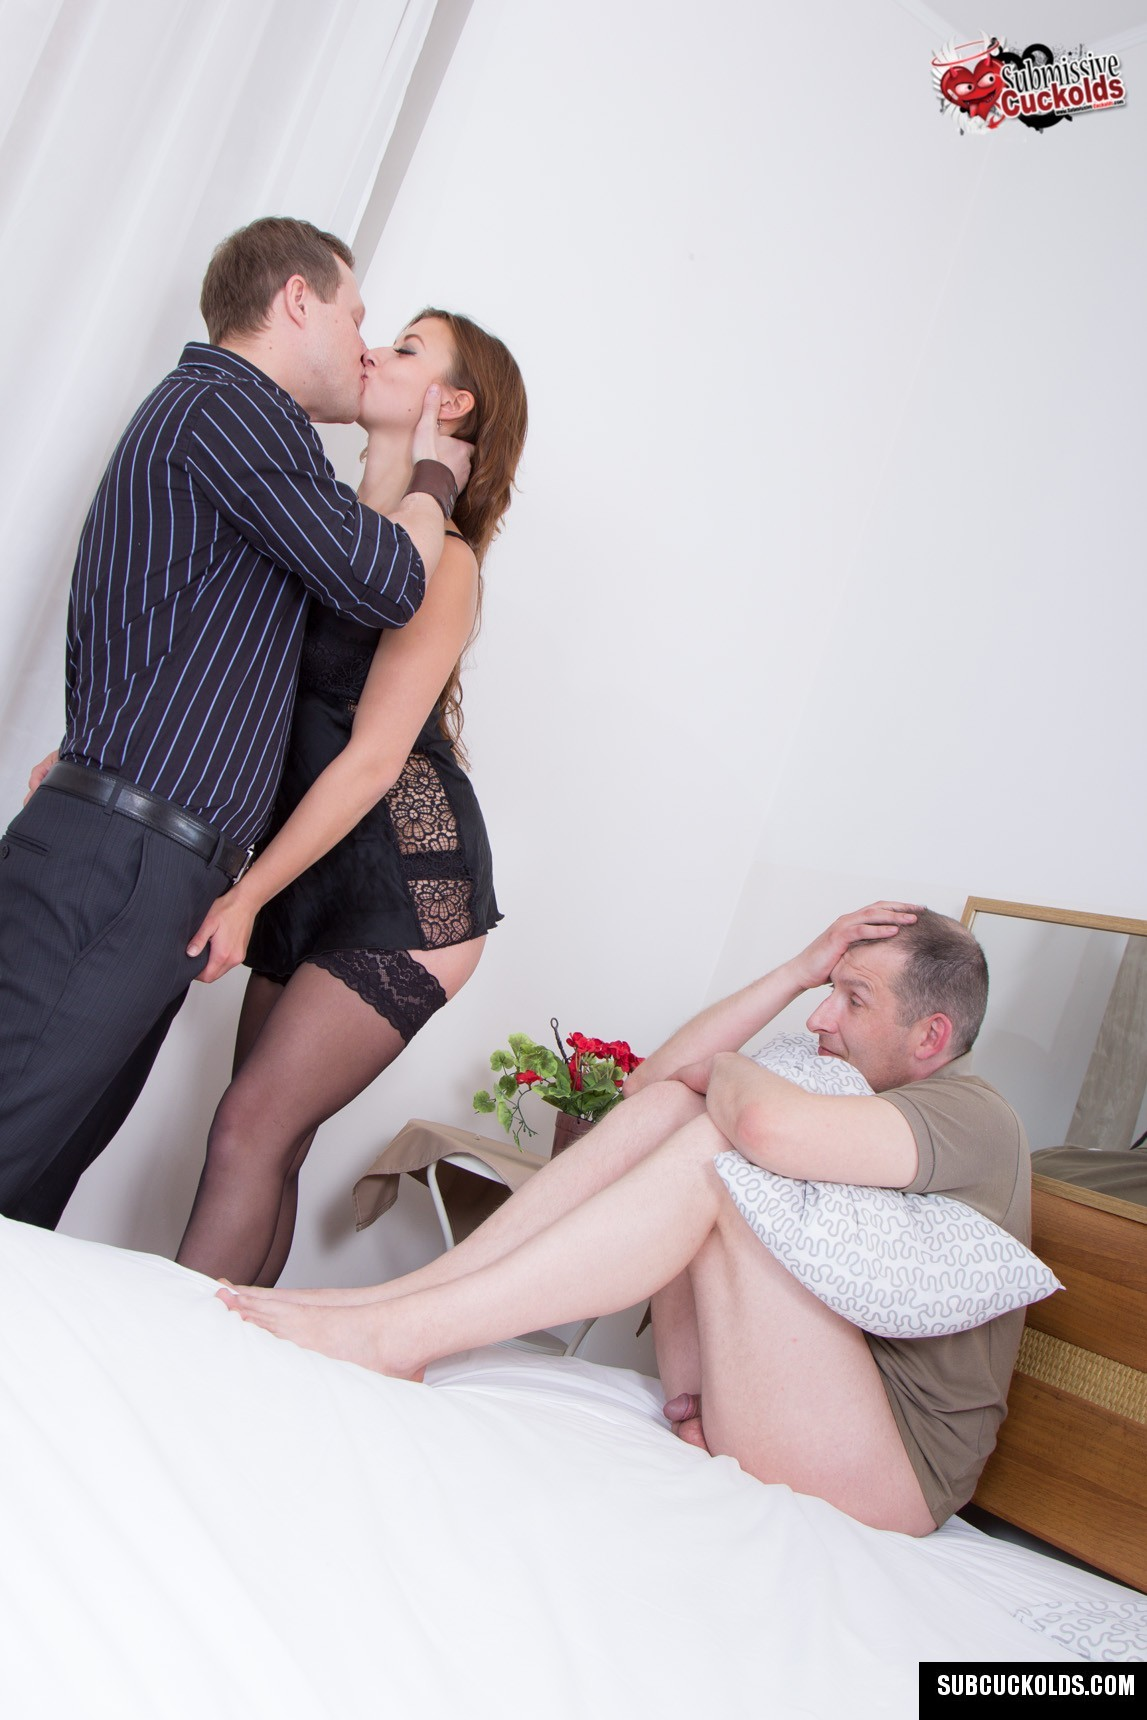 A young cuckold relationship part 2 - 1 part 2